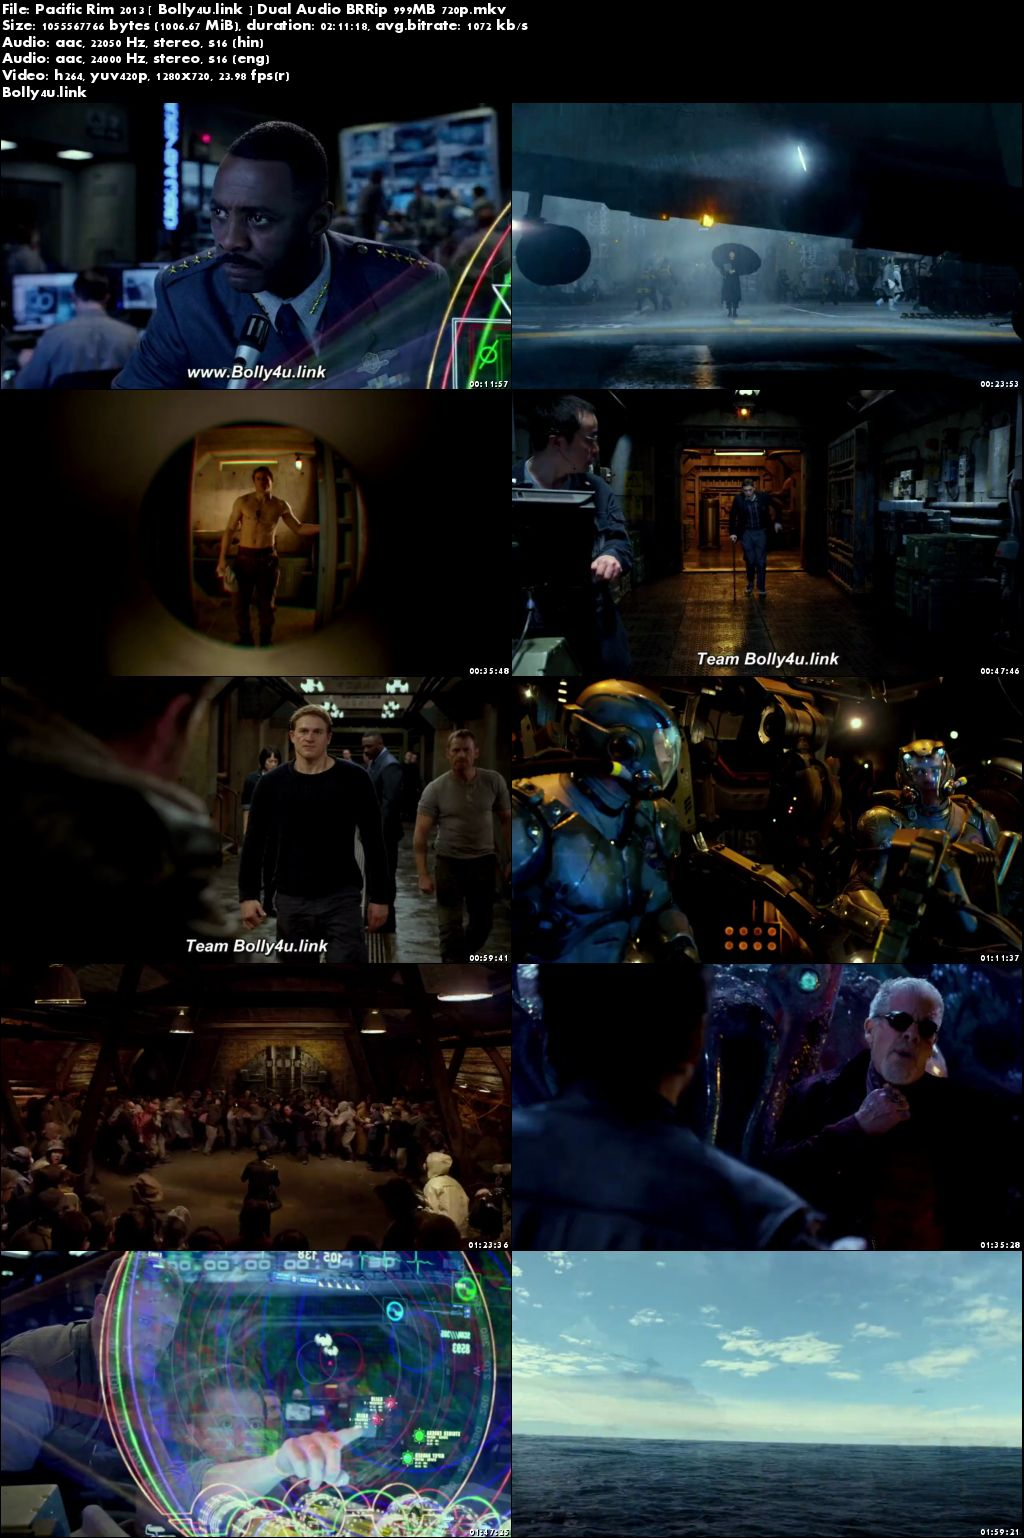 Pacific Rim 2013 BRRip 999Mb Hindi Dual Audio 720p Download